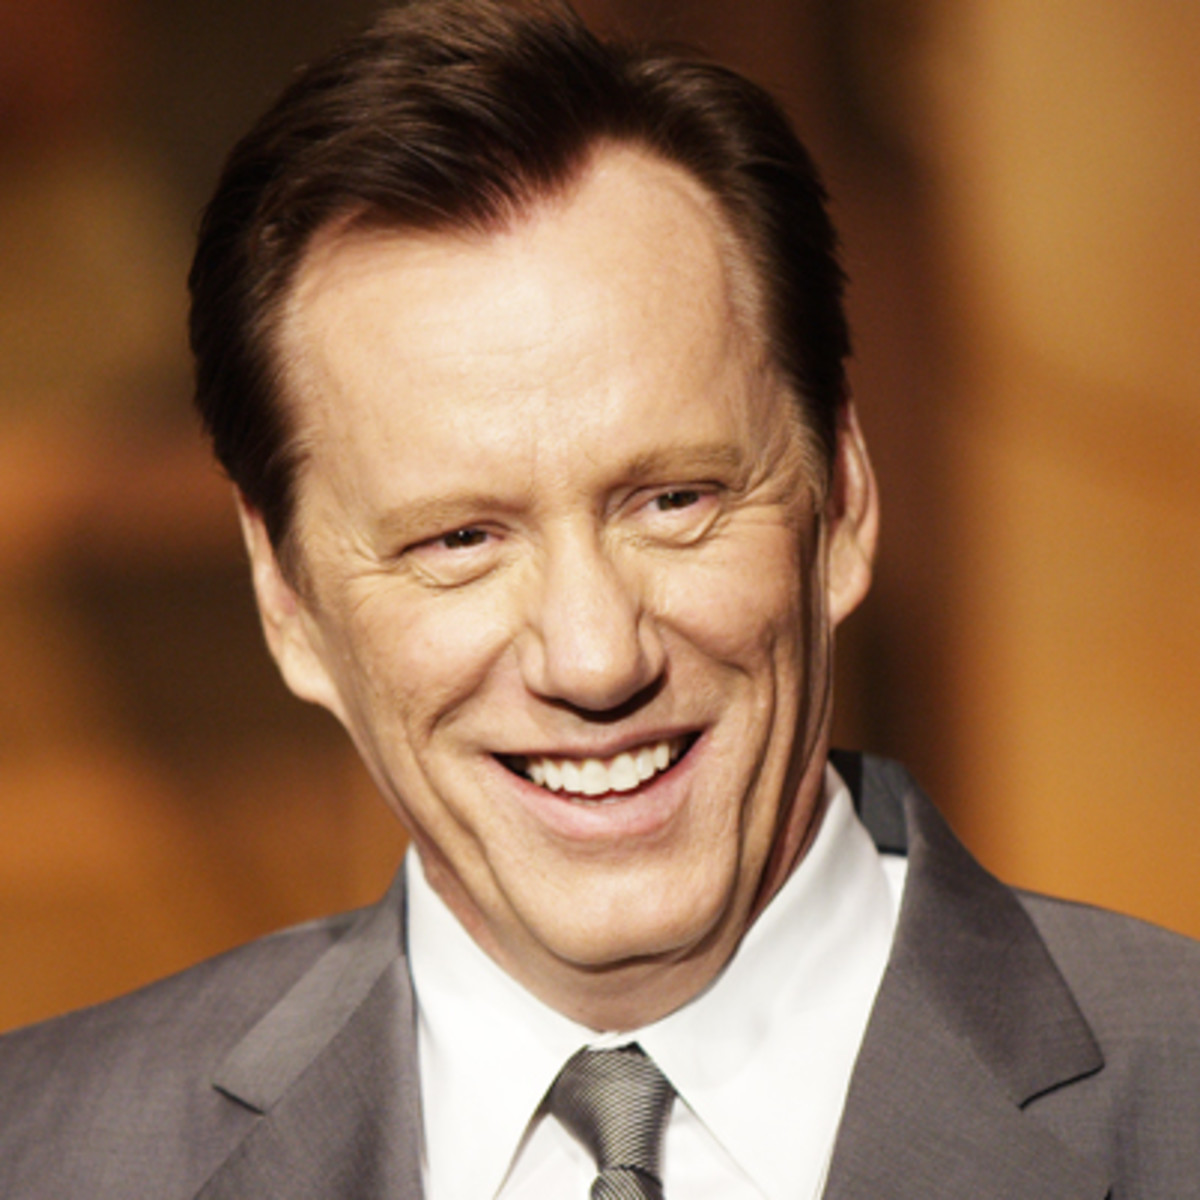 James Woods - Actor, Television Actor, Film Actor - Biography